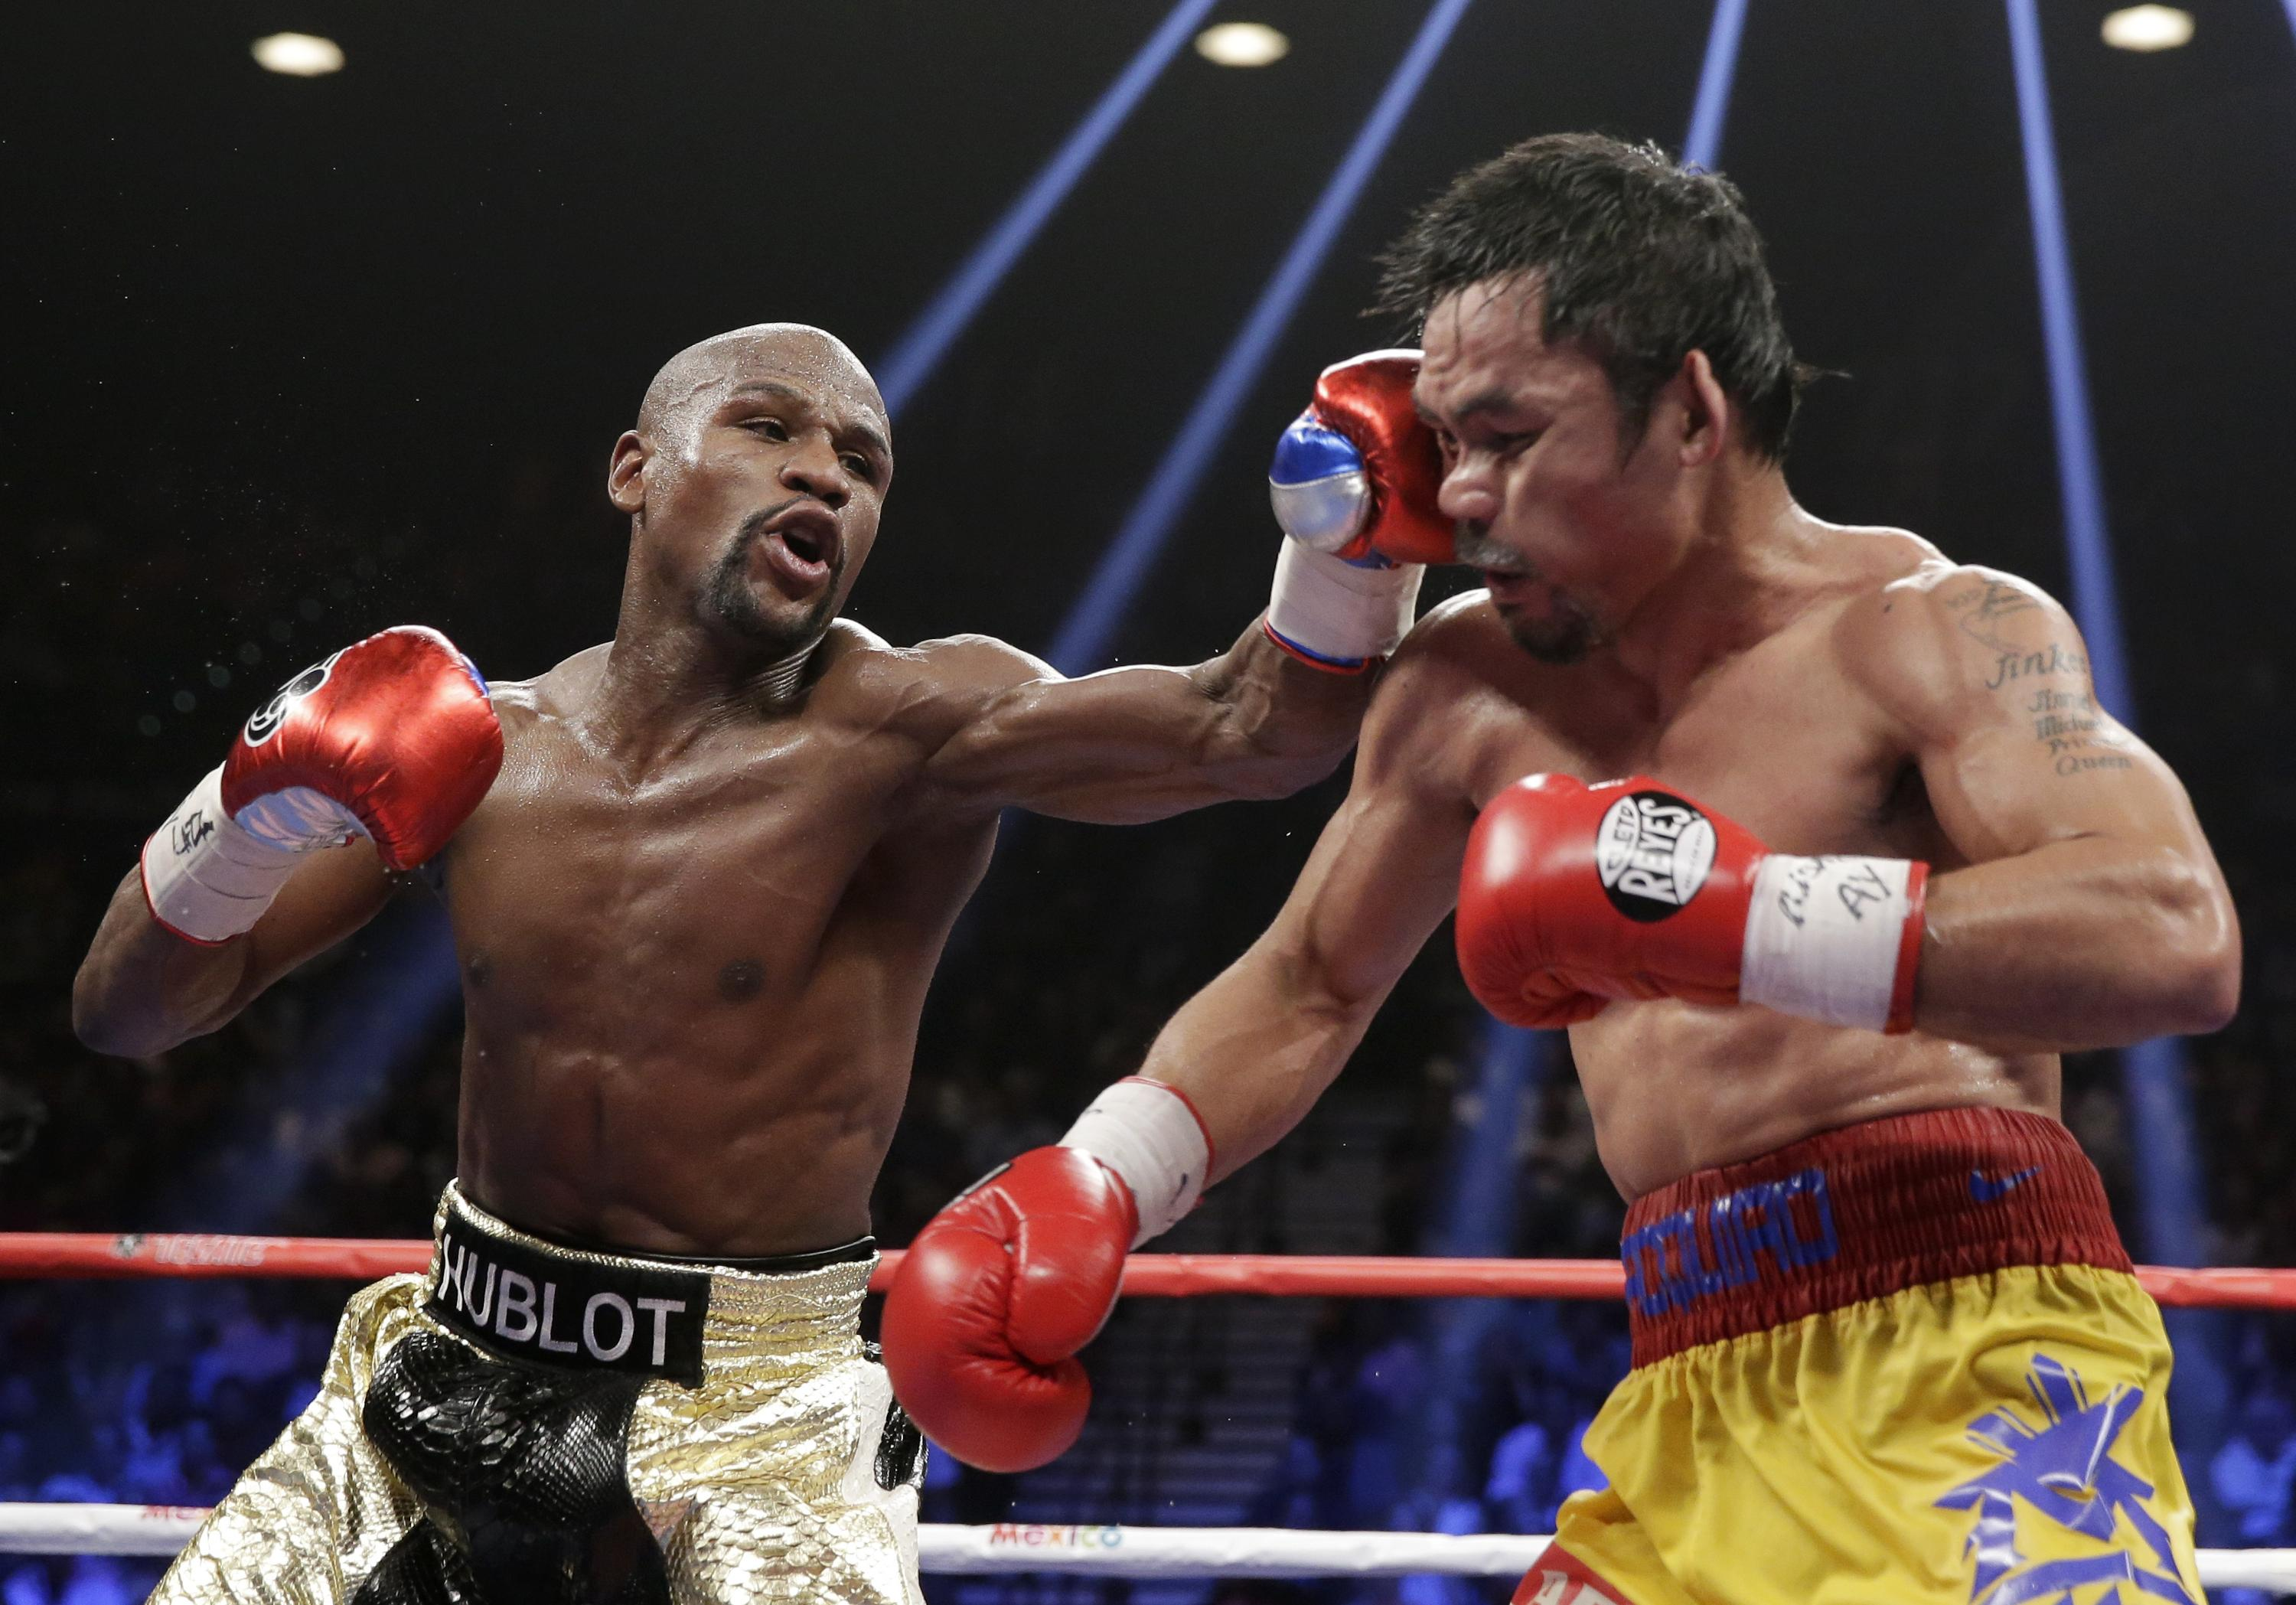 Mayweather defeated Pacquiao in 2015